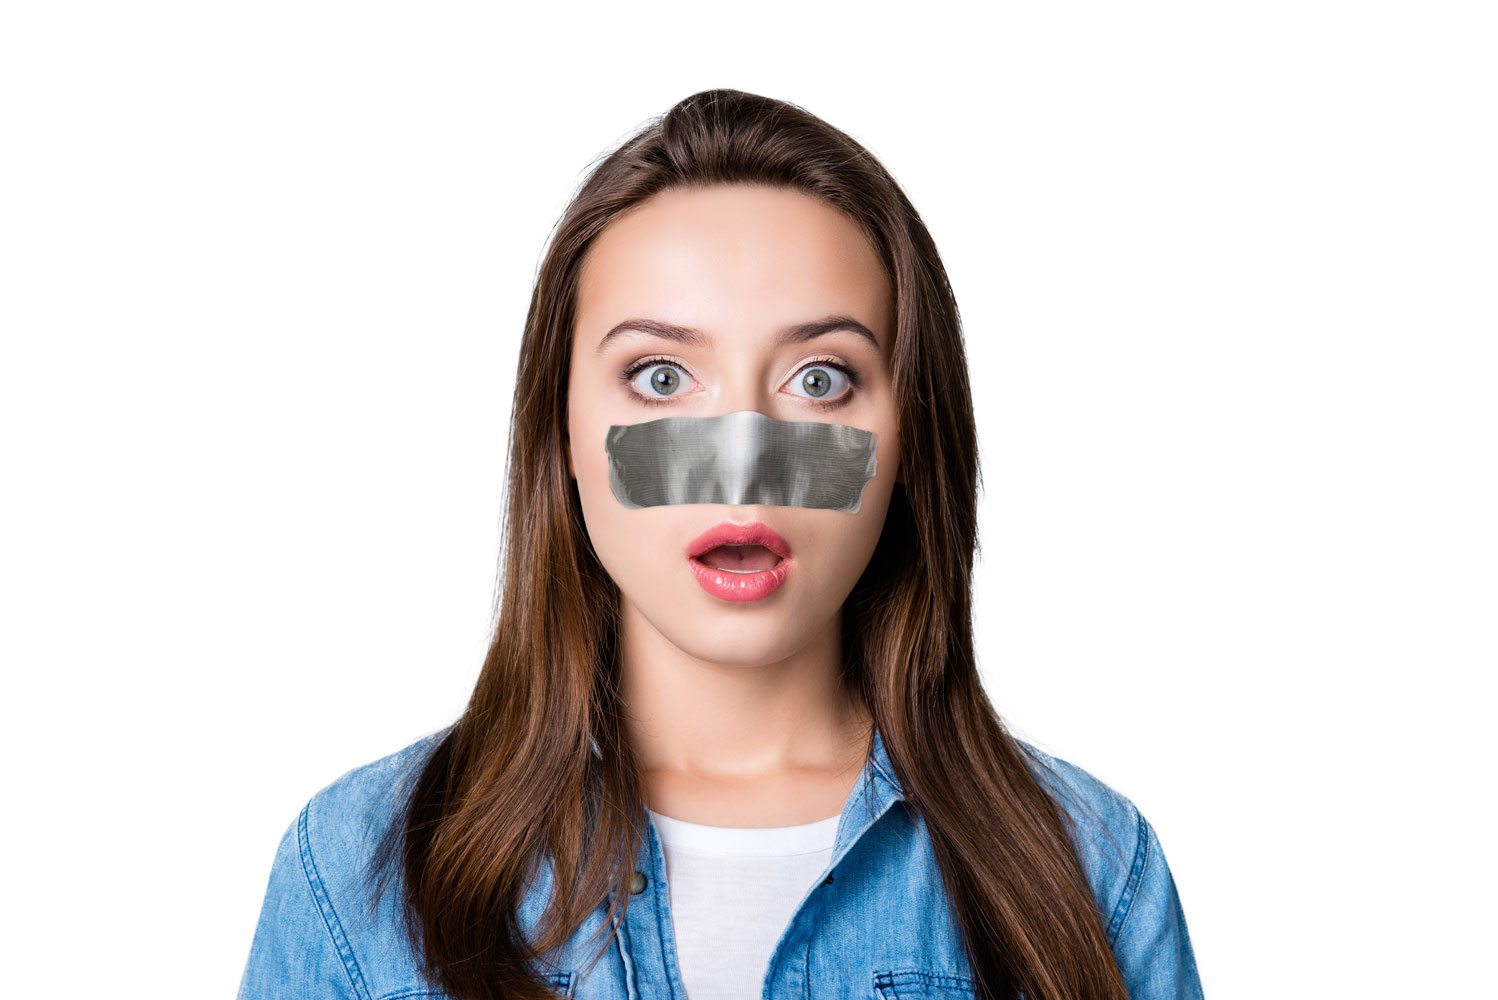 Tape-Over-Nose-Woman